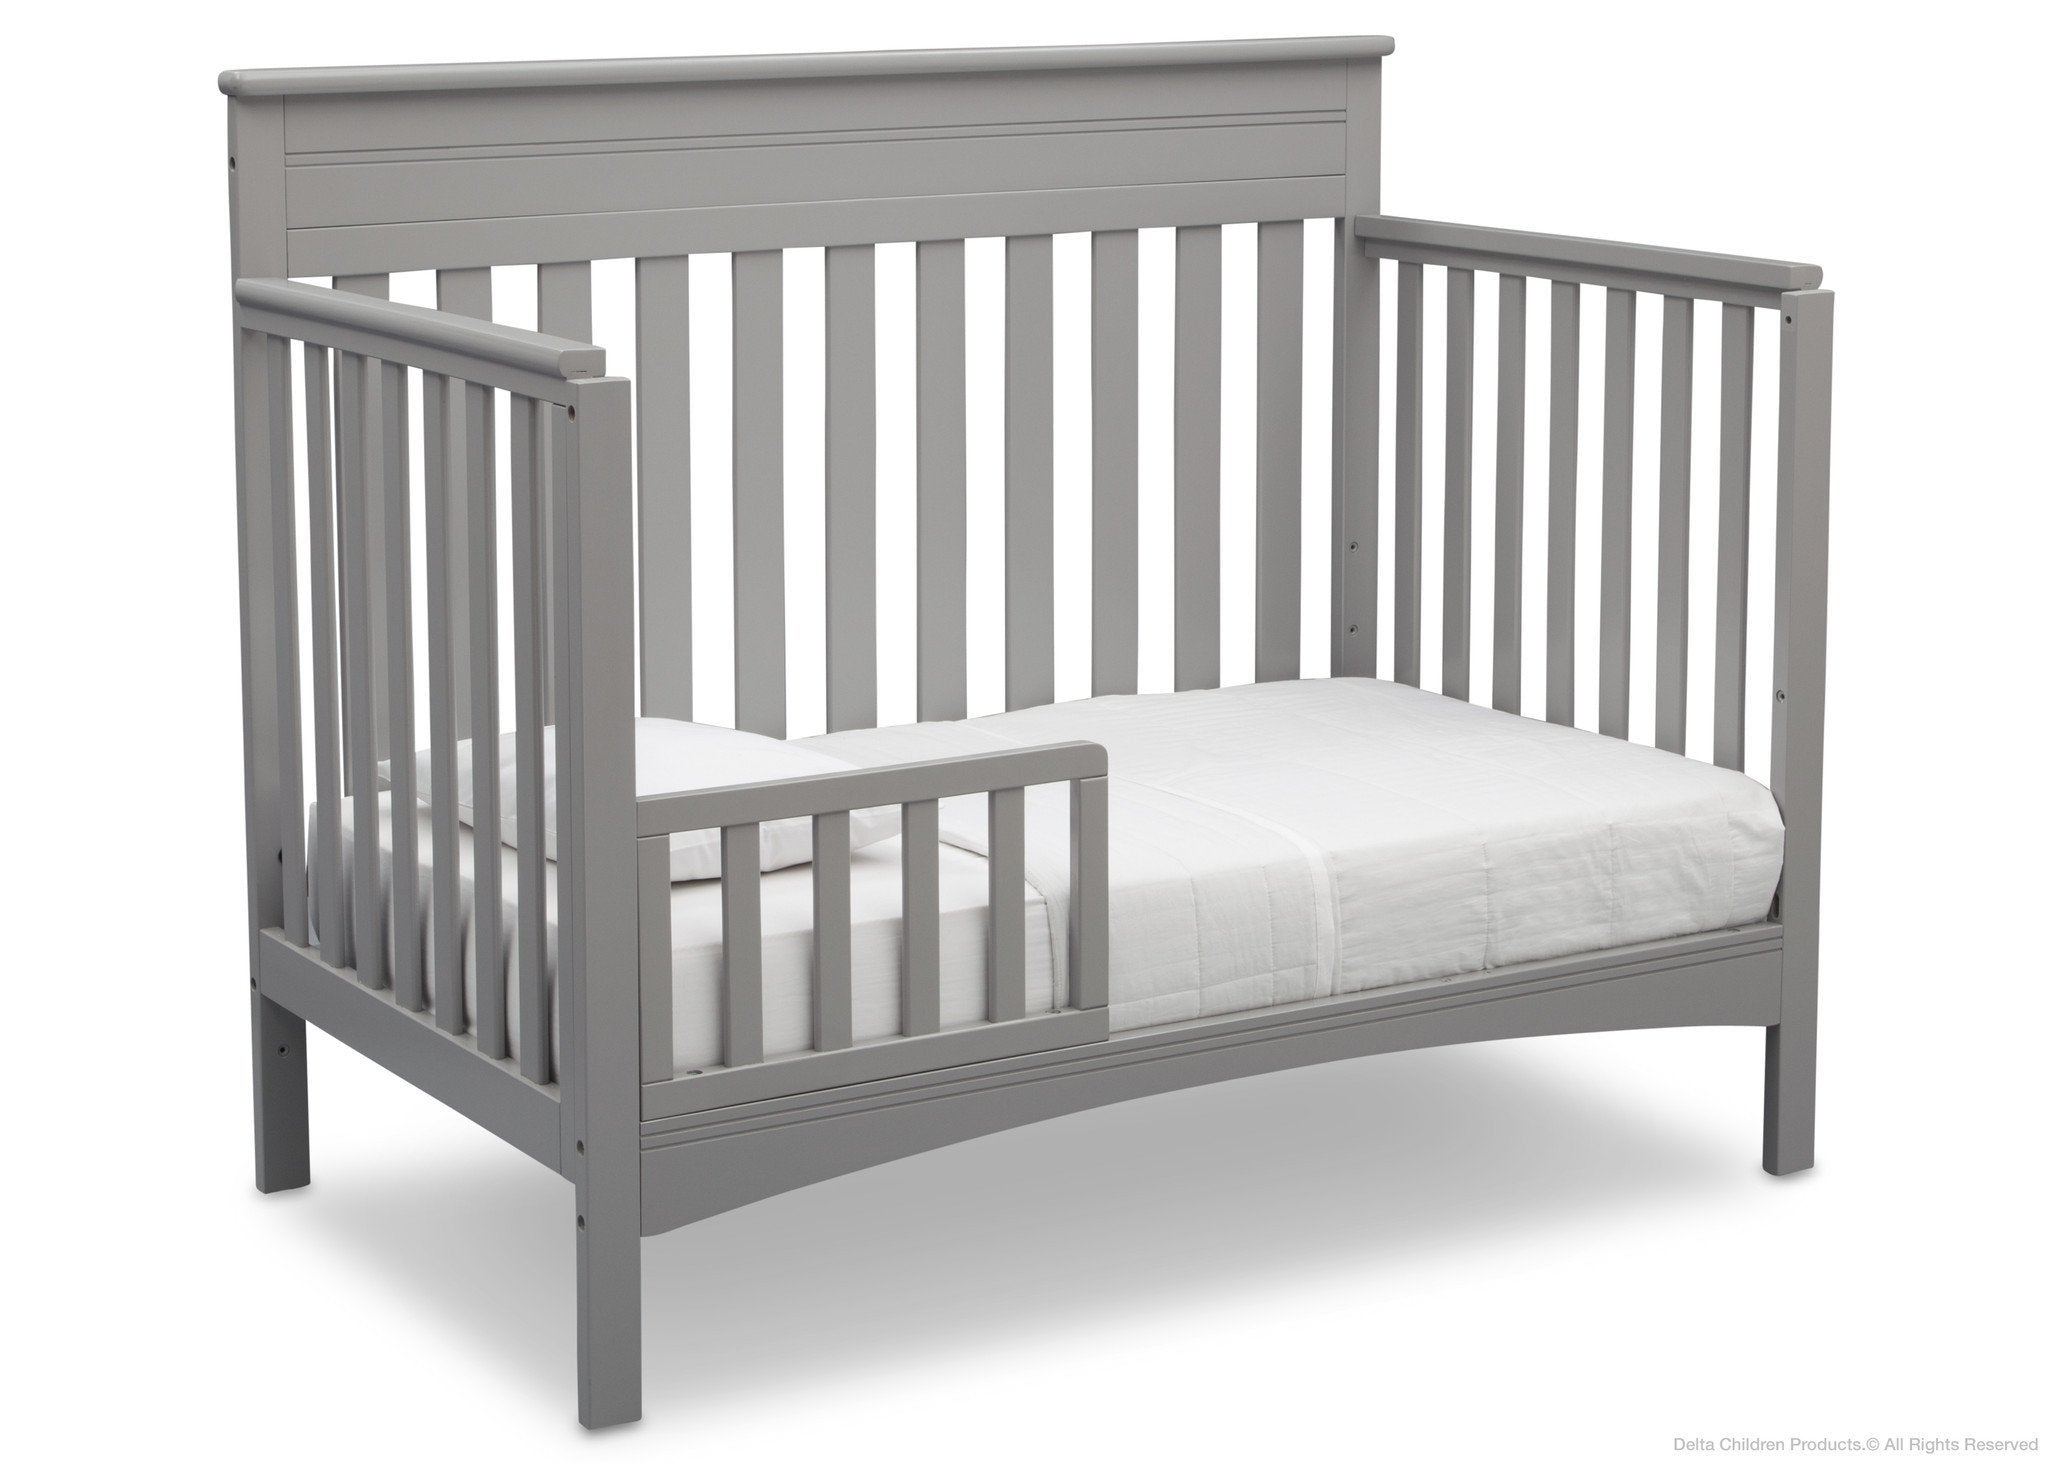 Delta Children Grey (026) Fabio 4-in-1 Crib Side View, Toddler Bed Conversion with Toddler Guardrail c4c